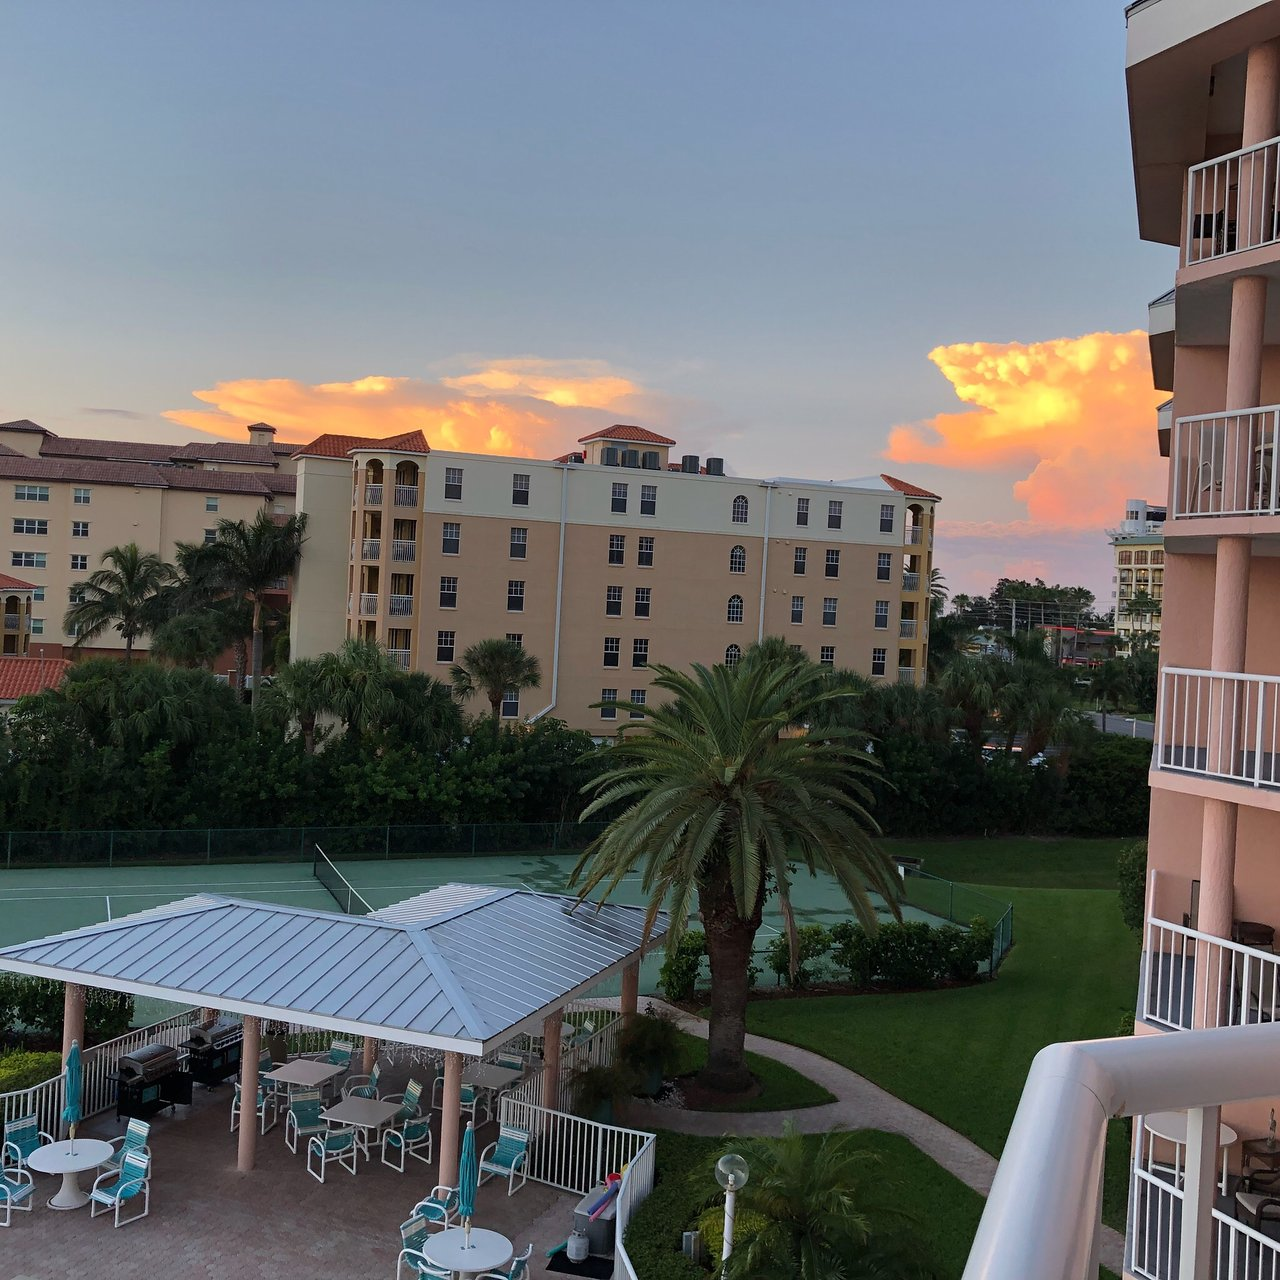 SUNRISE RESORT - Updated 2019 Prices & Condominium Reviews